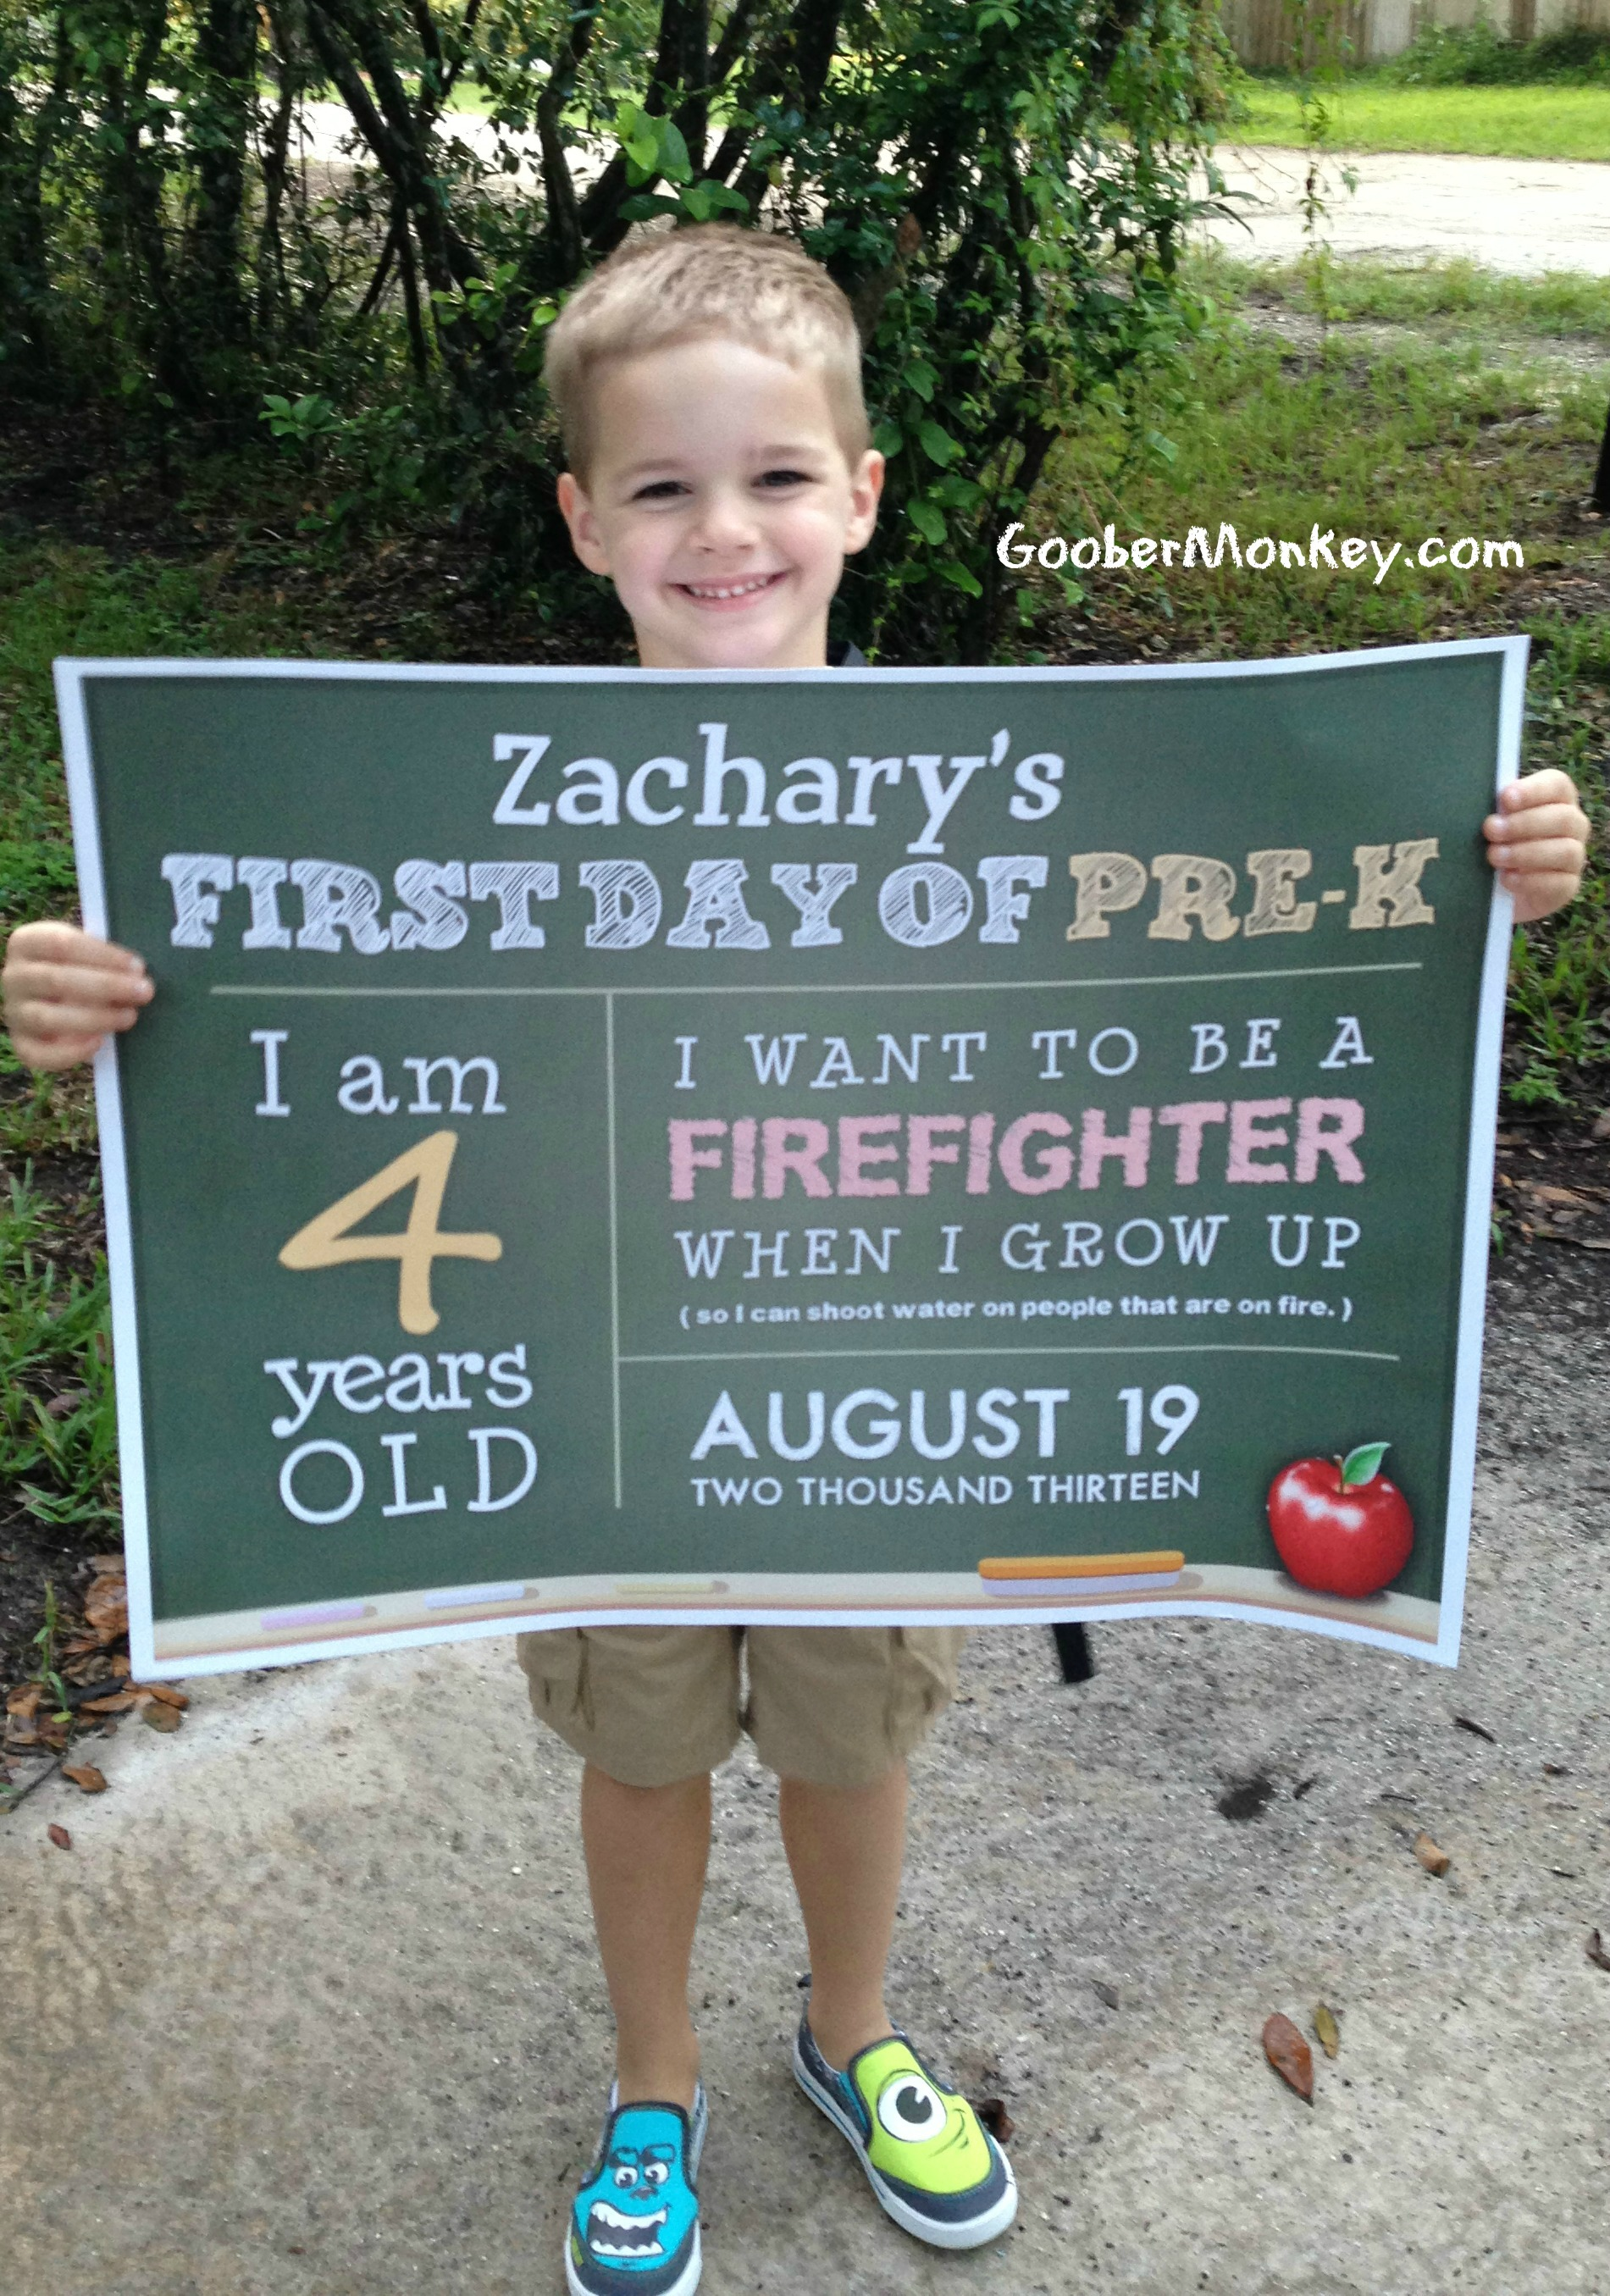 First Day Of School Free Printables From Goobermonkey78 And Seriouskrystyn